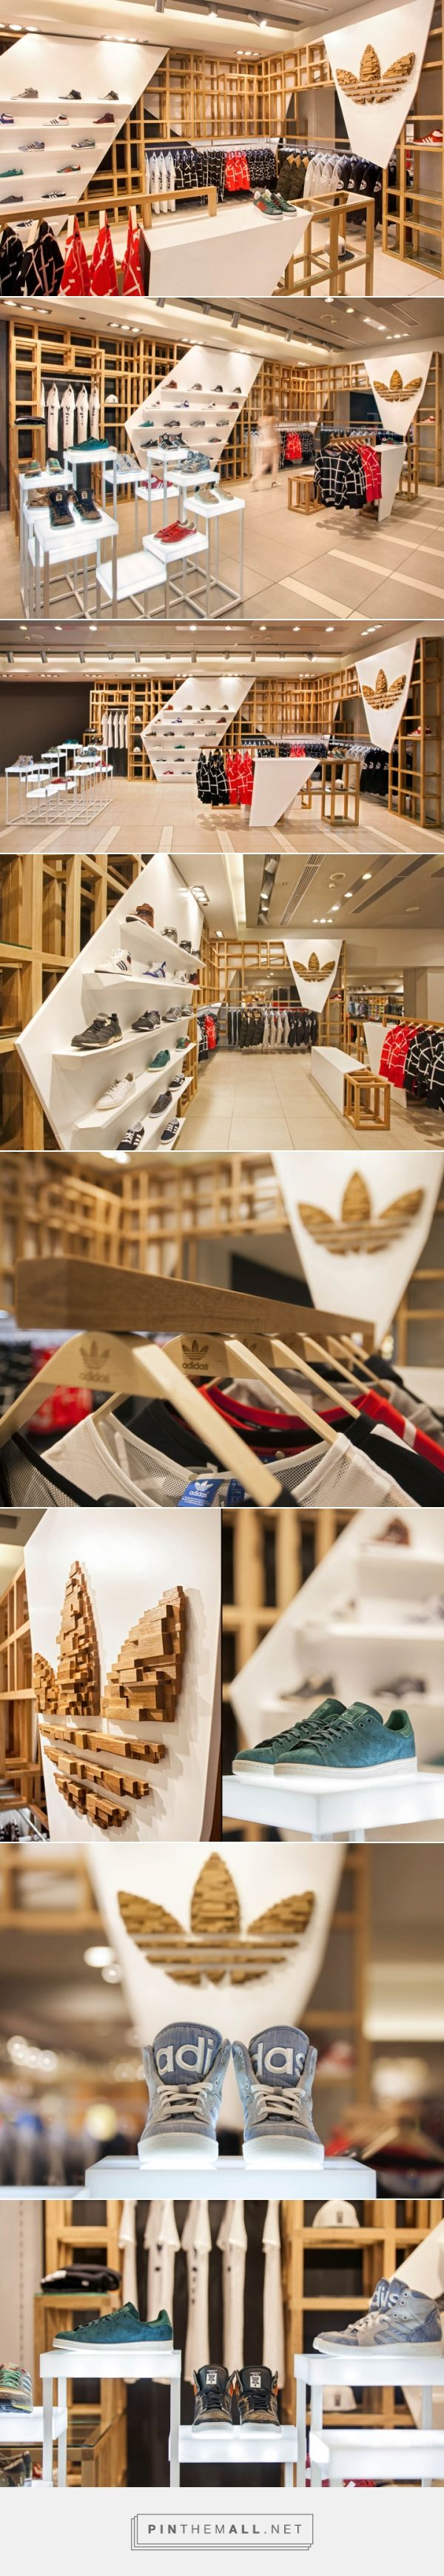 adidas Originals fashion store by ONOMA Architects, Athens – Greece » Retail Design Blog - created on 2015-08-19 04:08:47